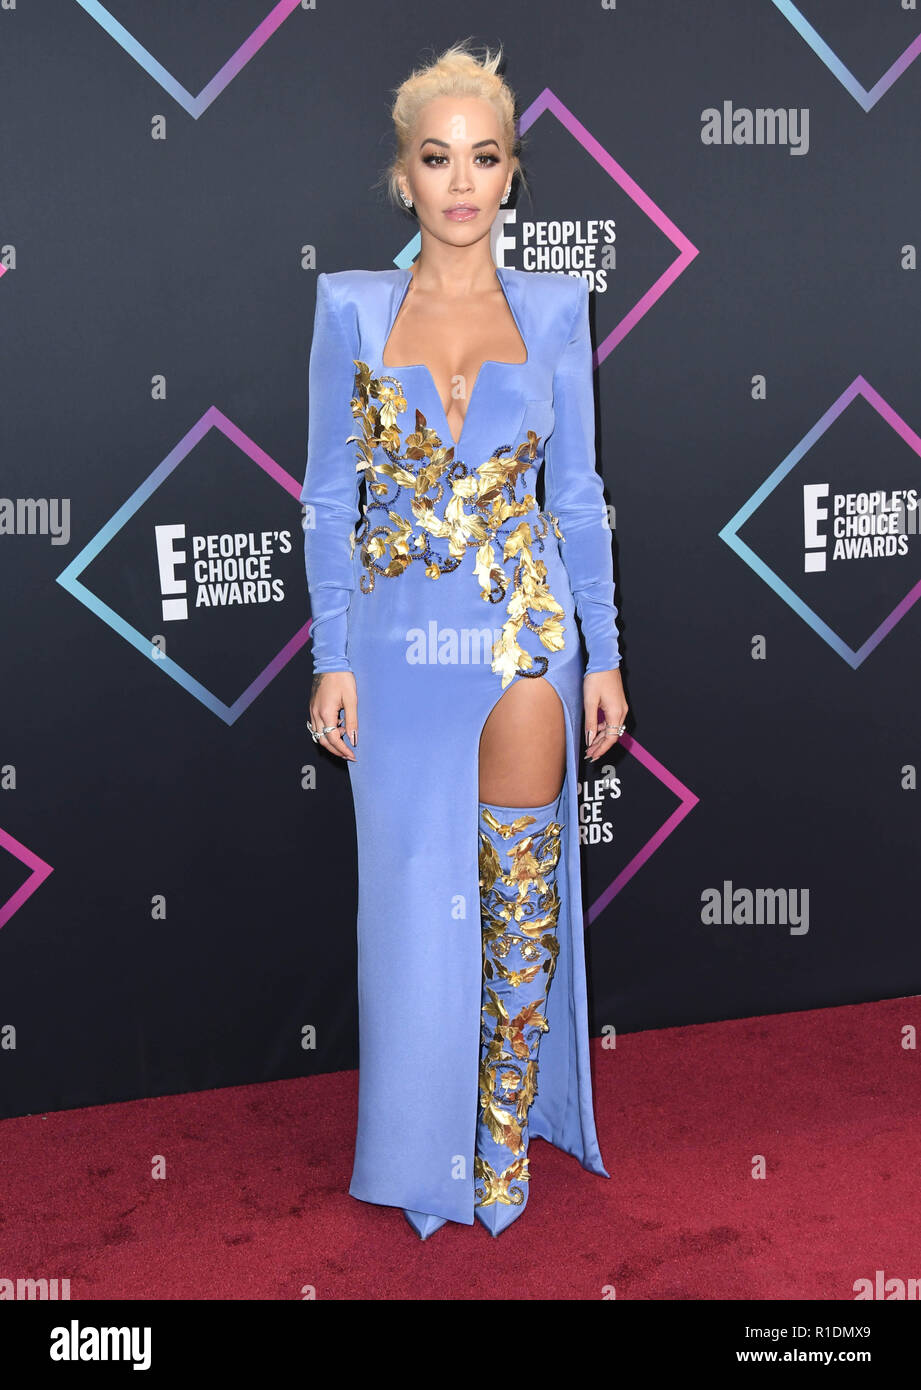 November 11, 2018 - Santa Monica, CA, U.S. - 11 November 2018 - Santa Monica, California - Rita Ora . 2018 E! People's Choice Awards - Arrivals held at Barker Hangar. Photo Credit: Birdie Thompson/AdMedia (Credit Image: © Birdie Thompson/AdMedia via ZUMA Wire) - Stock Image